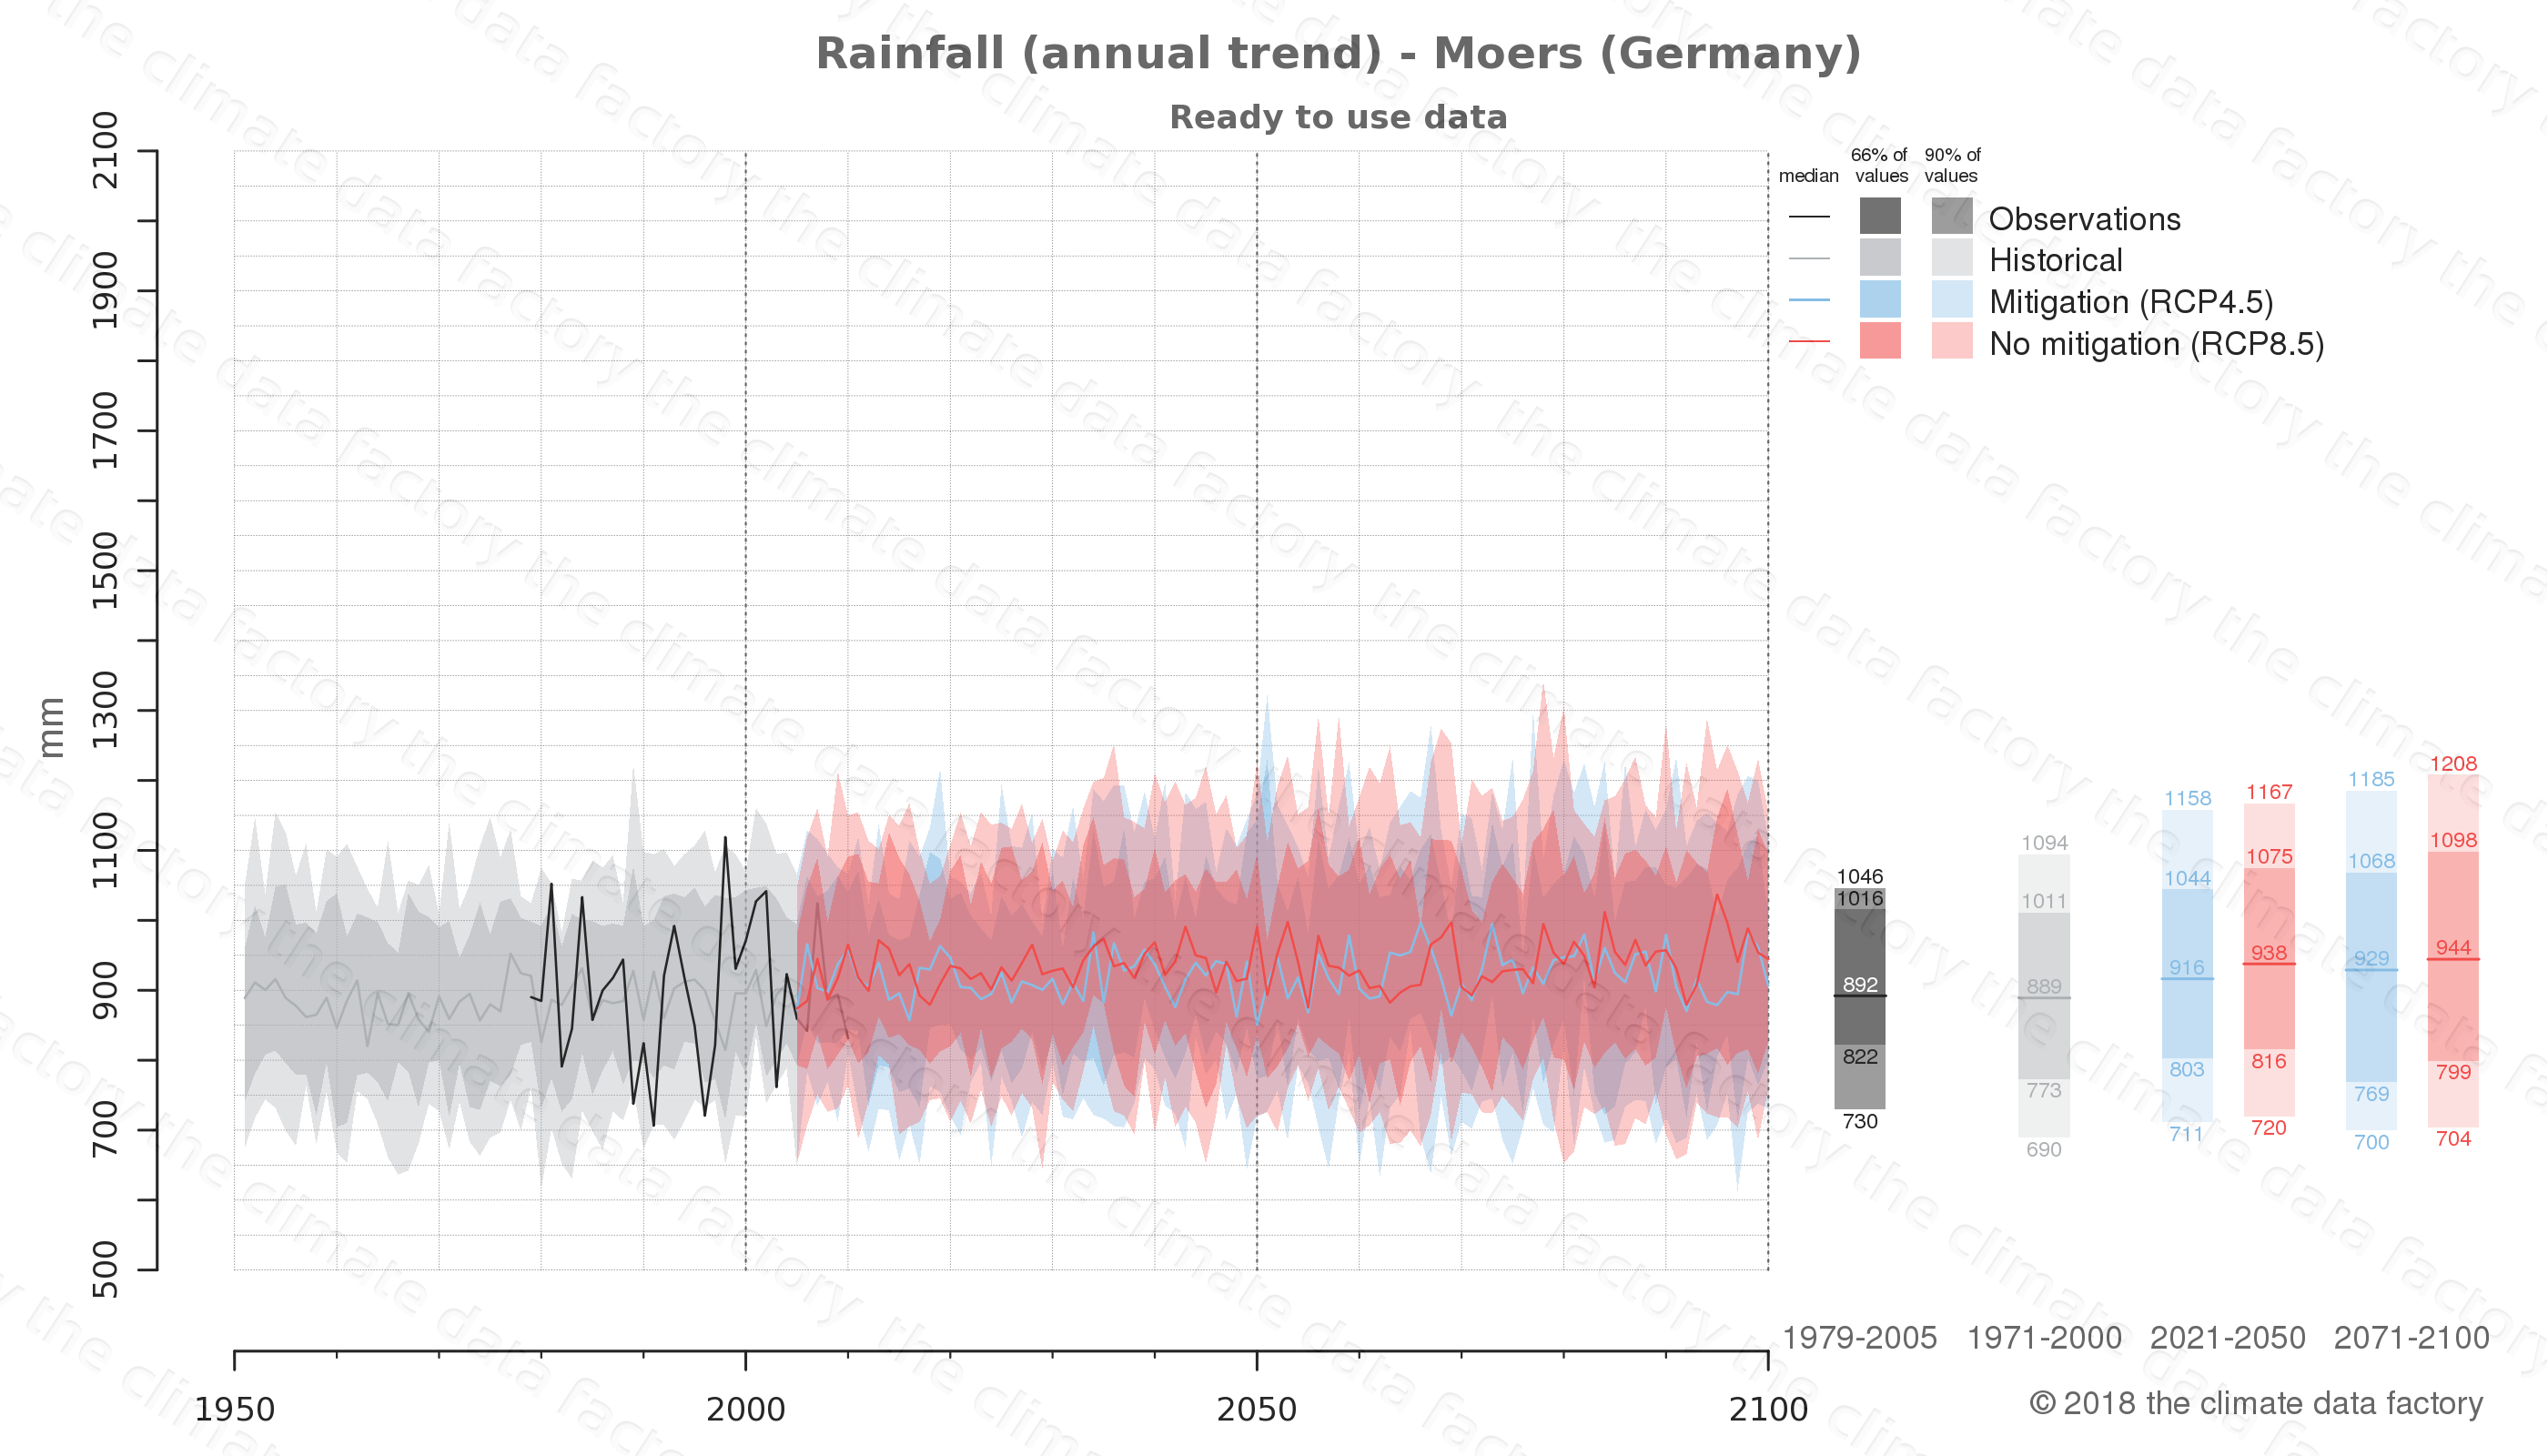 climate change data policy adaptation climate graph city data rainfall moers germany